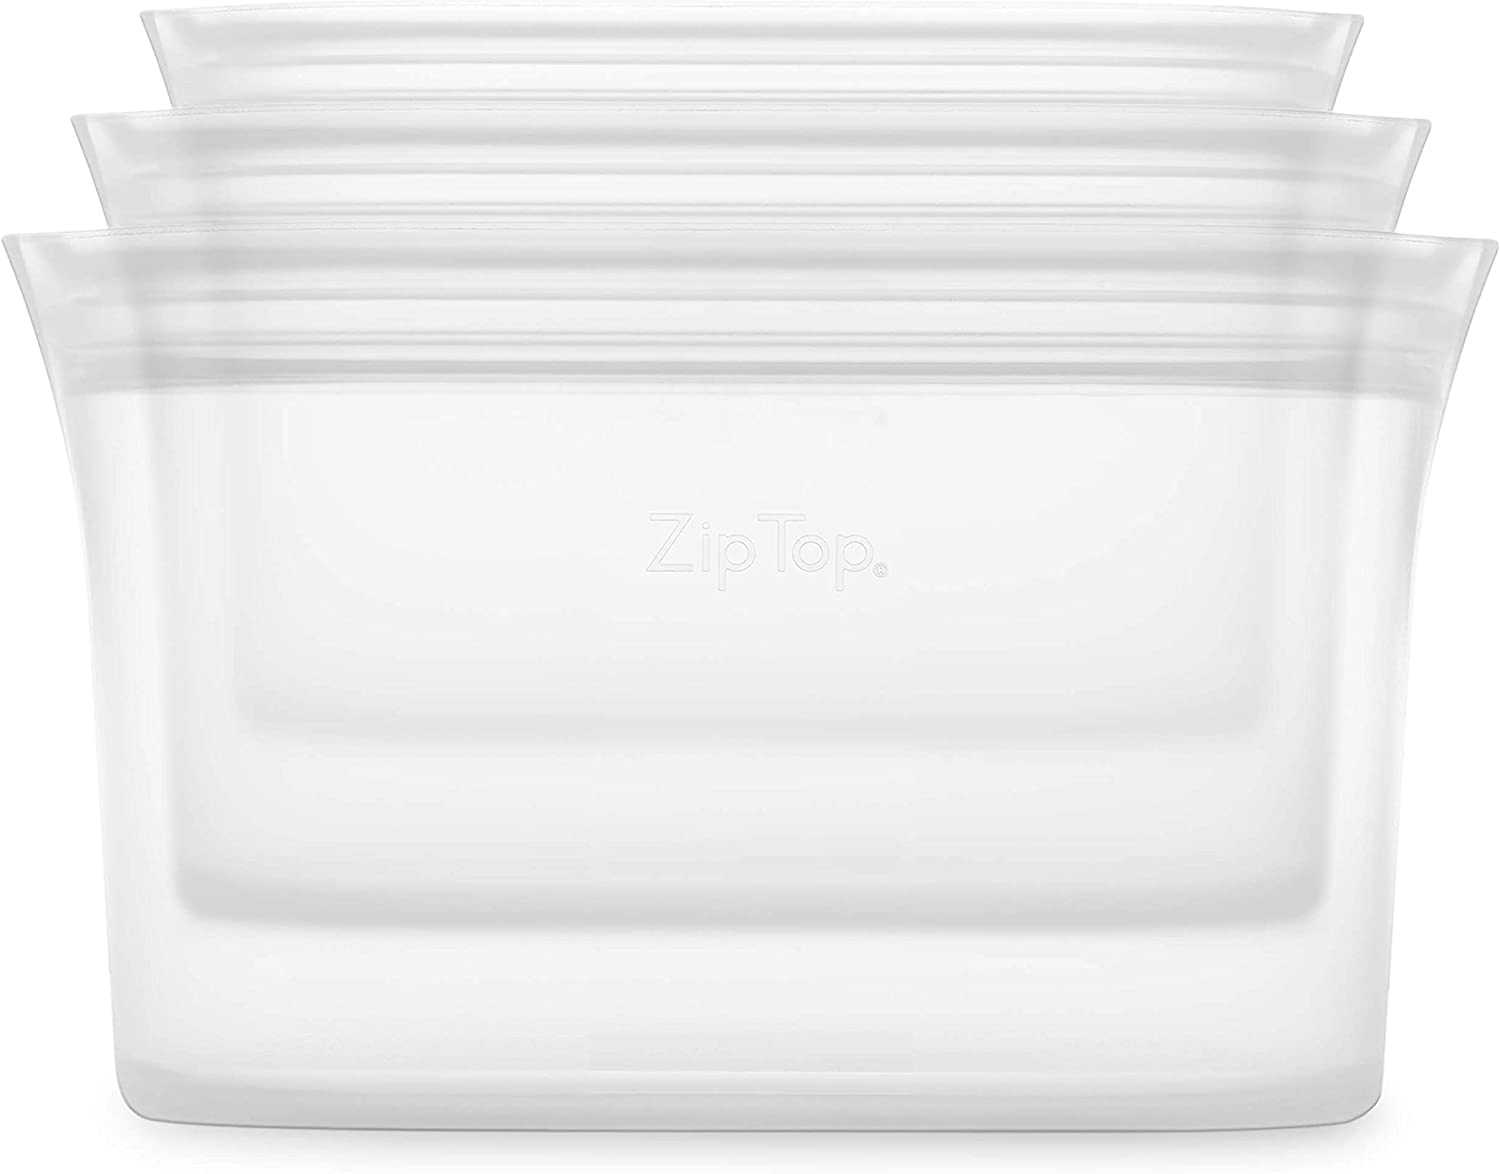 Zip Top Reusable 100% Platinum Silicone Containers - 3 Dish Set - Frost